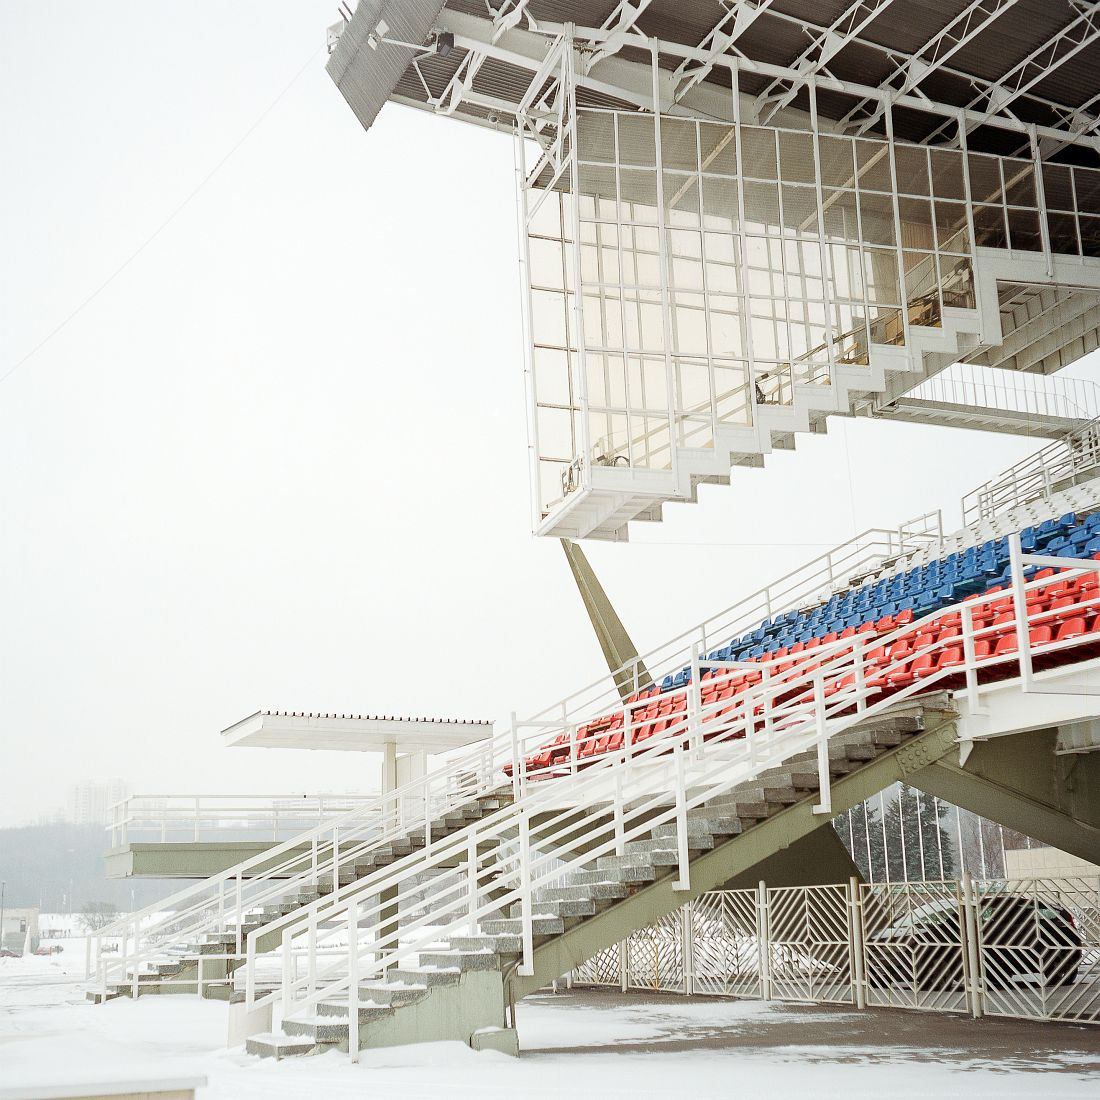 The arena and judges' box at Krylatskoye artificial canoeing and rowing basin. The 2300 metre rowing and canoeing basin was specifically built for Moscow Summer Olympics however has fallen out of regular use since.